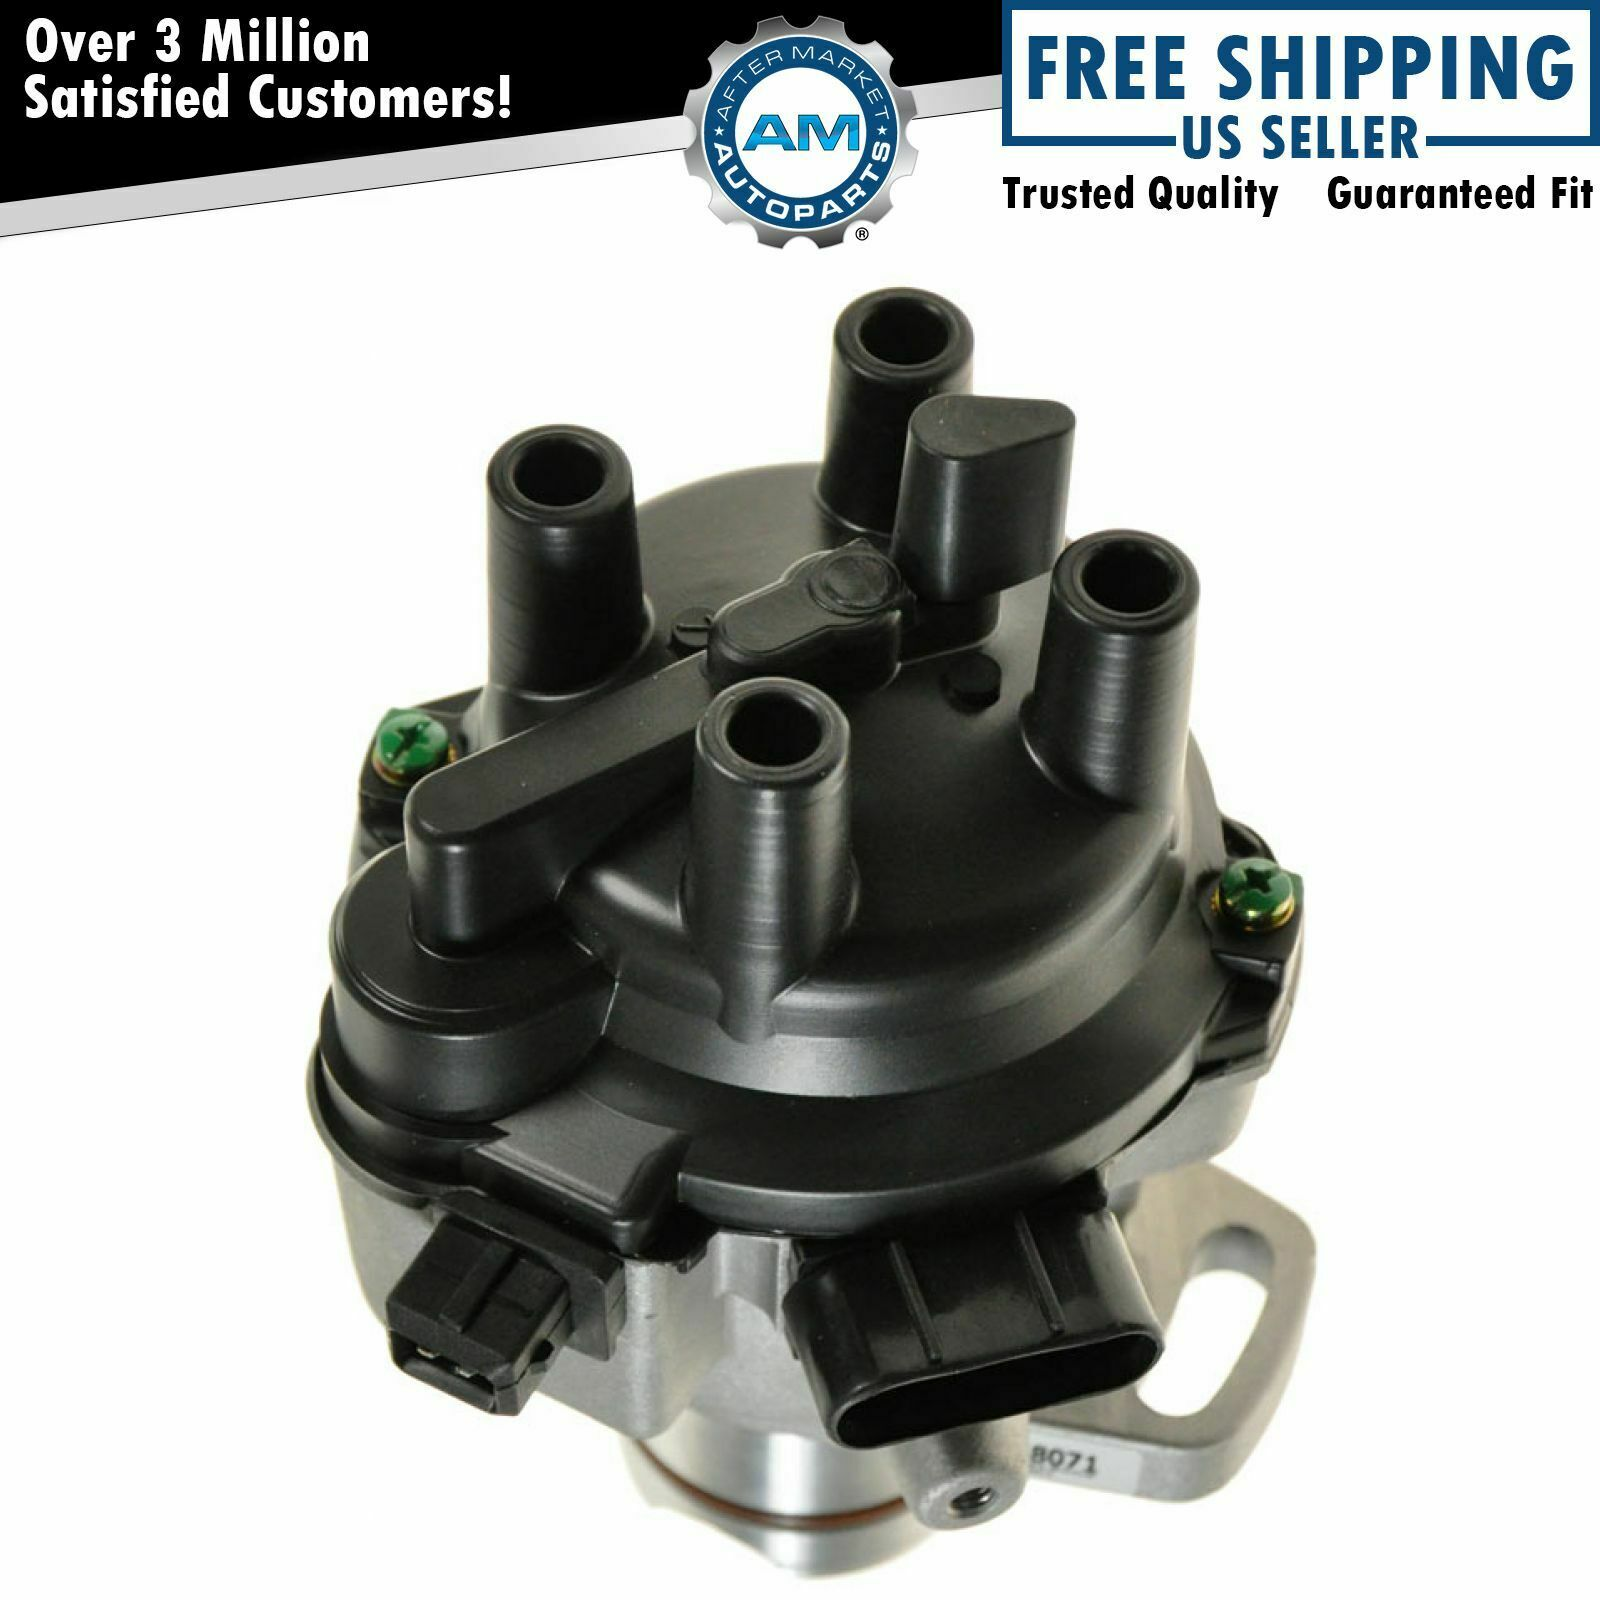 Ignition Distributor Module Cap Rotor L4 24l T6t58071 For Colt Summit Lt1 Wiring Harness 93 1 Of 3only 5 Available